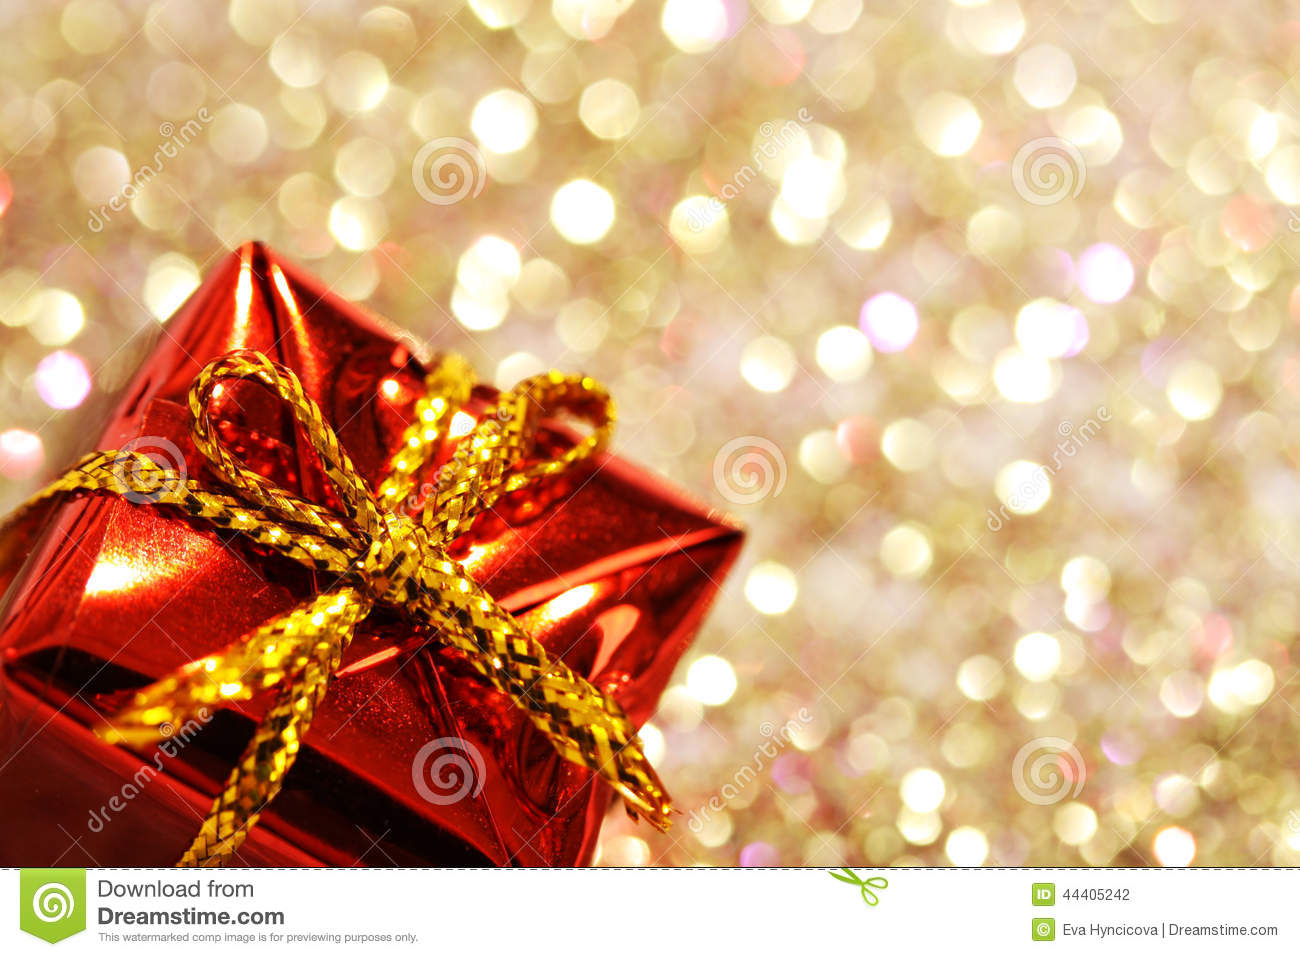 christmas birthday background ; part-christmas-red-gift-box-yellow-bow-glitter-silver-gold-background-colors-44405242